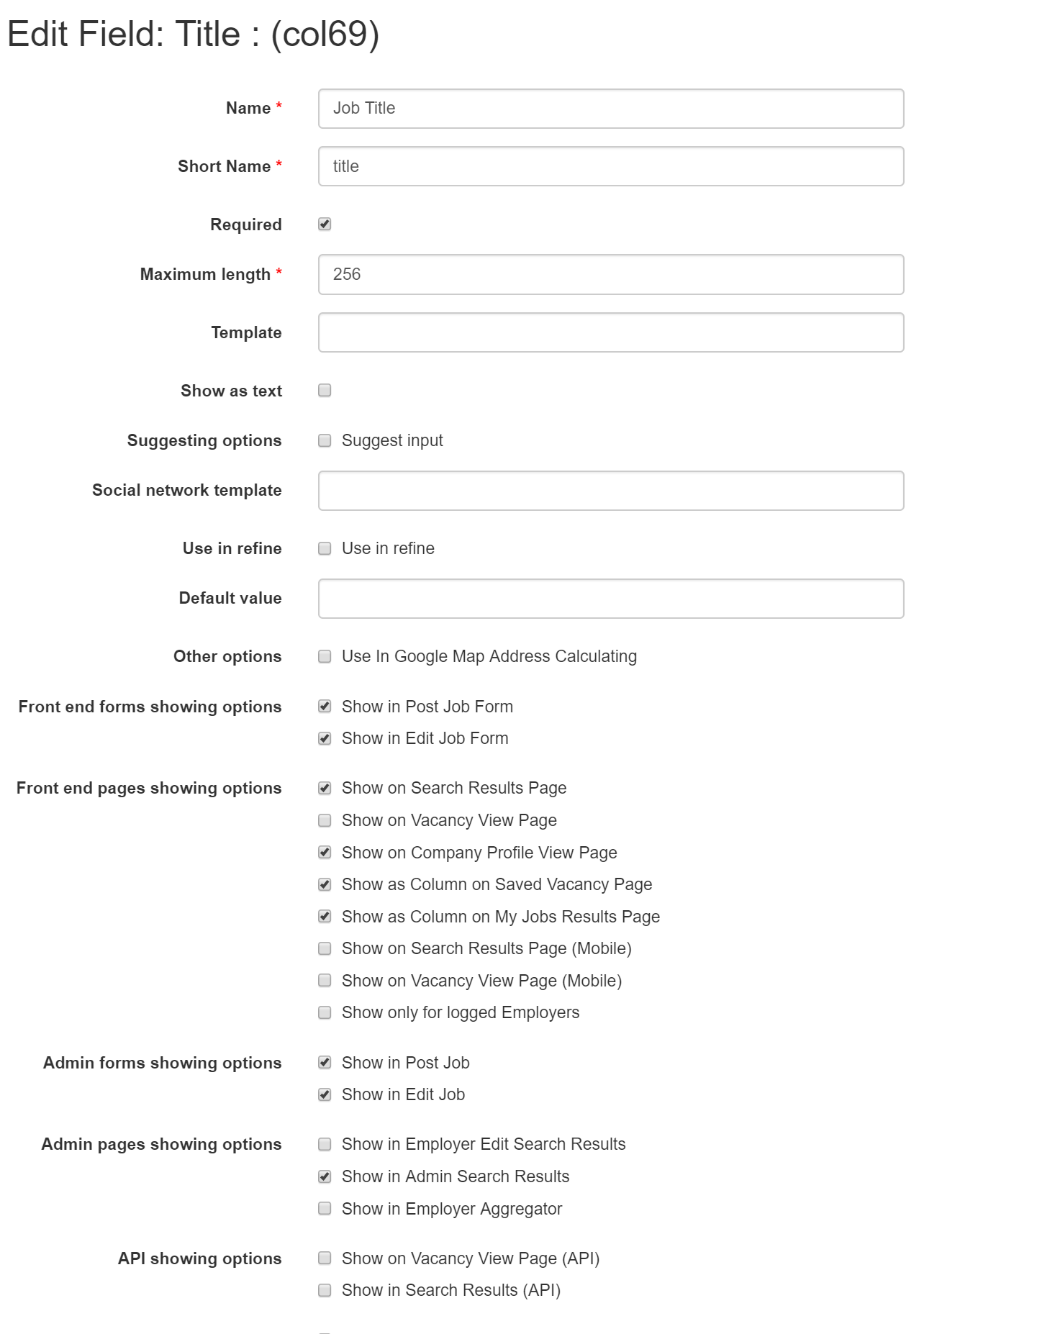 Customizable forms & listings edit title field